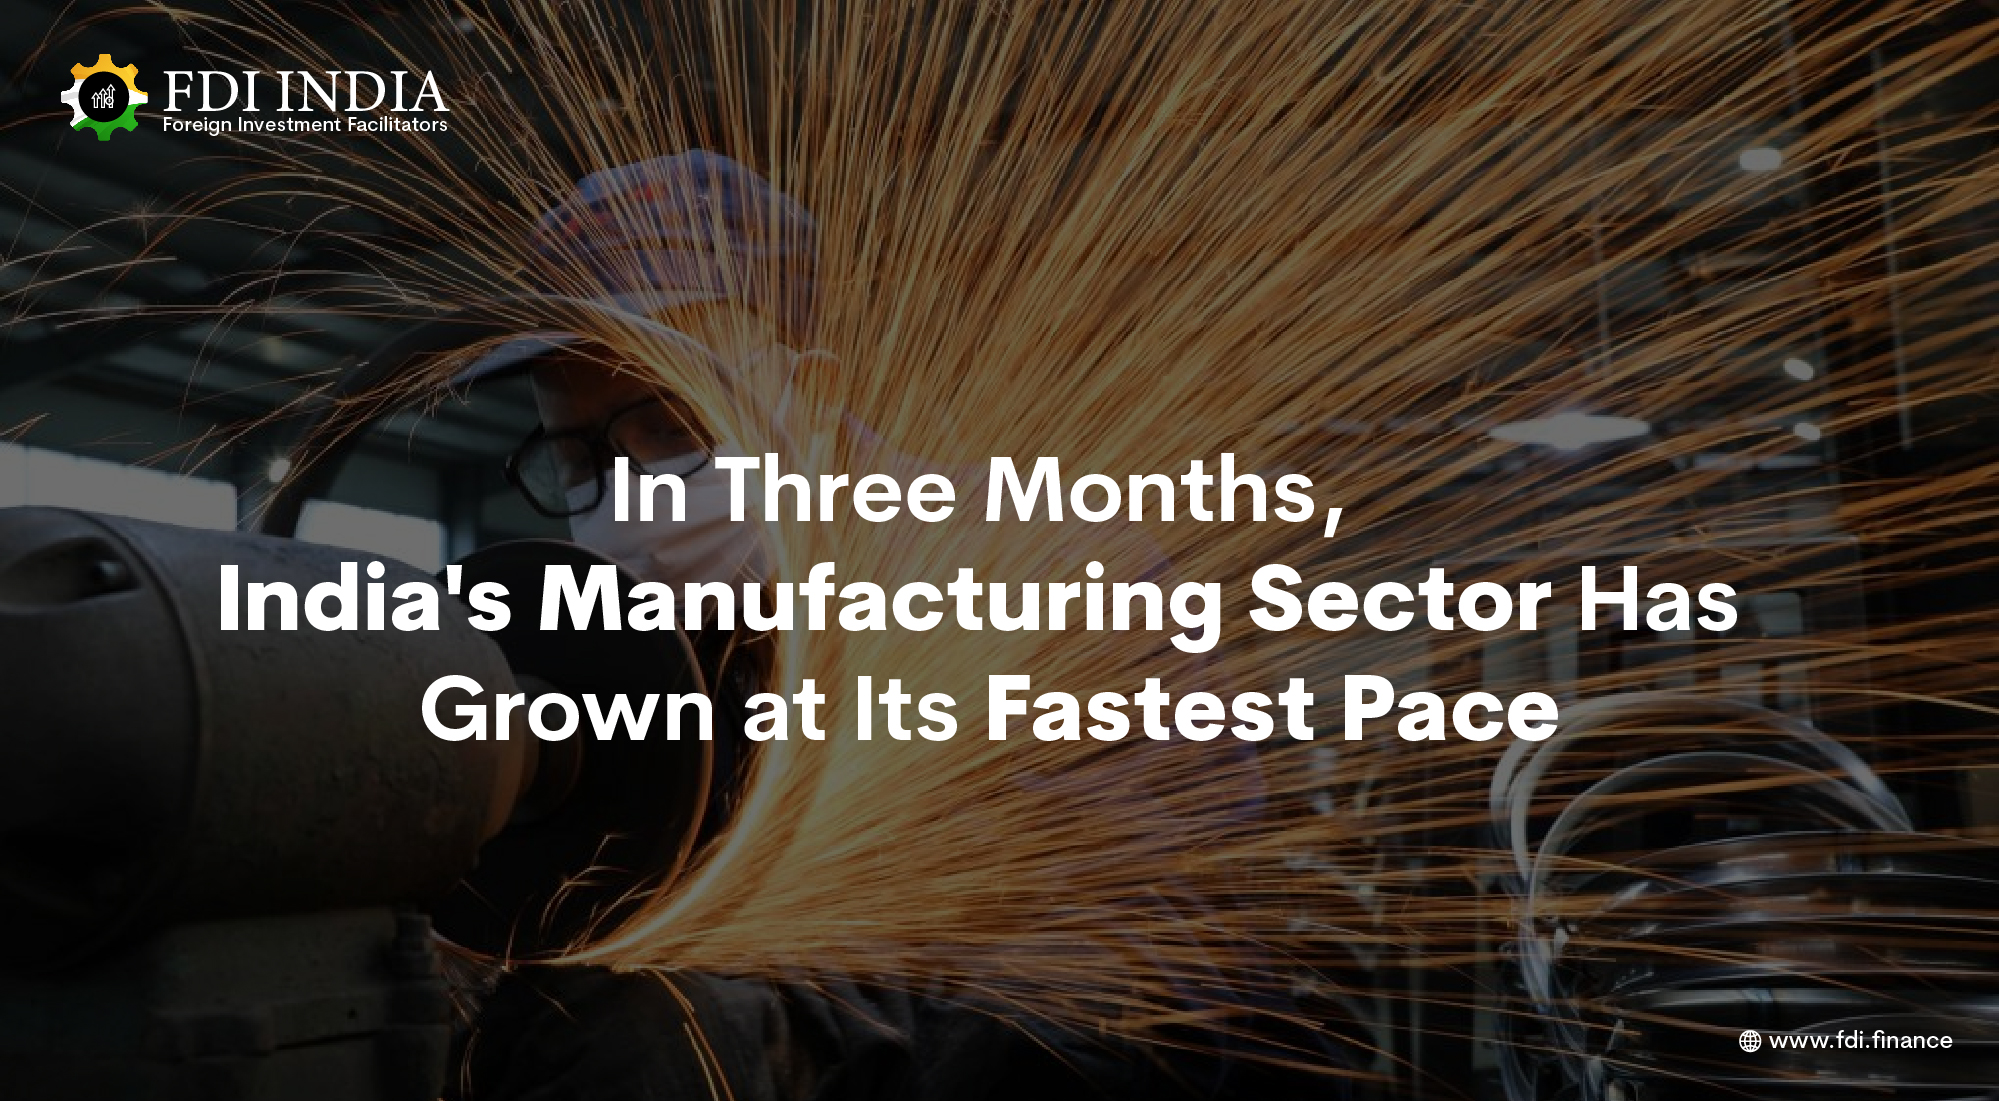 In Three Months, India's Manufacturing Sector Has Grown at Its Fastest Pace